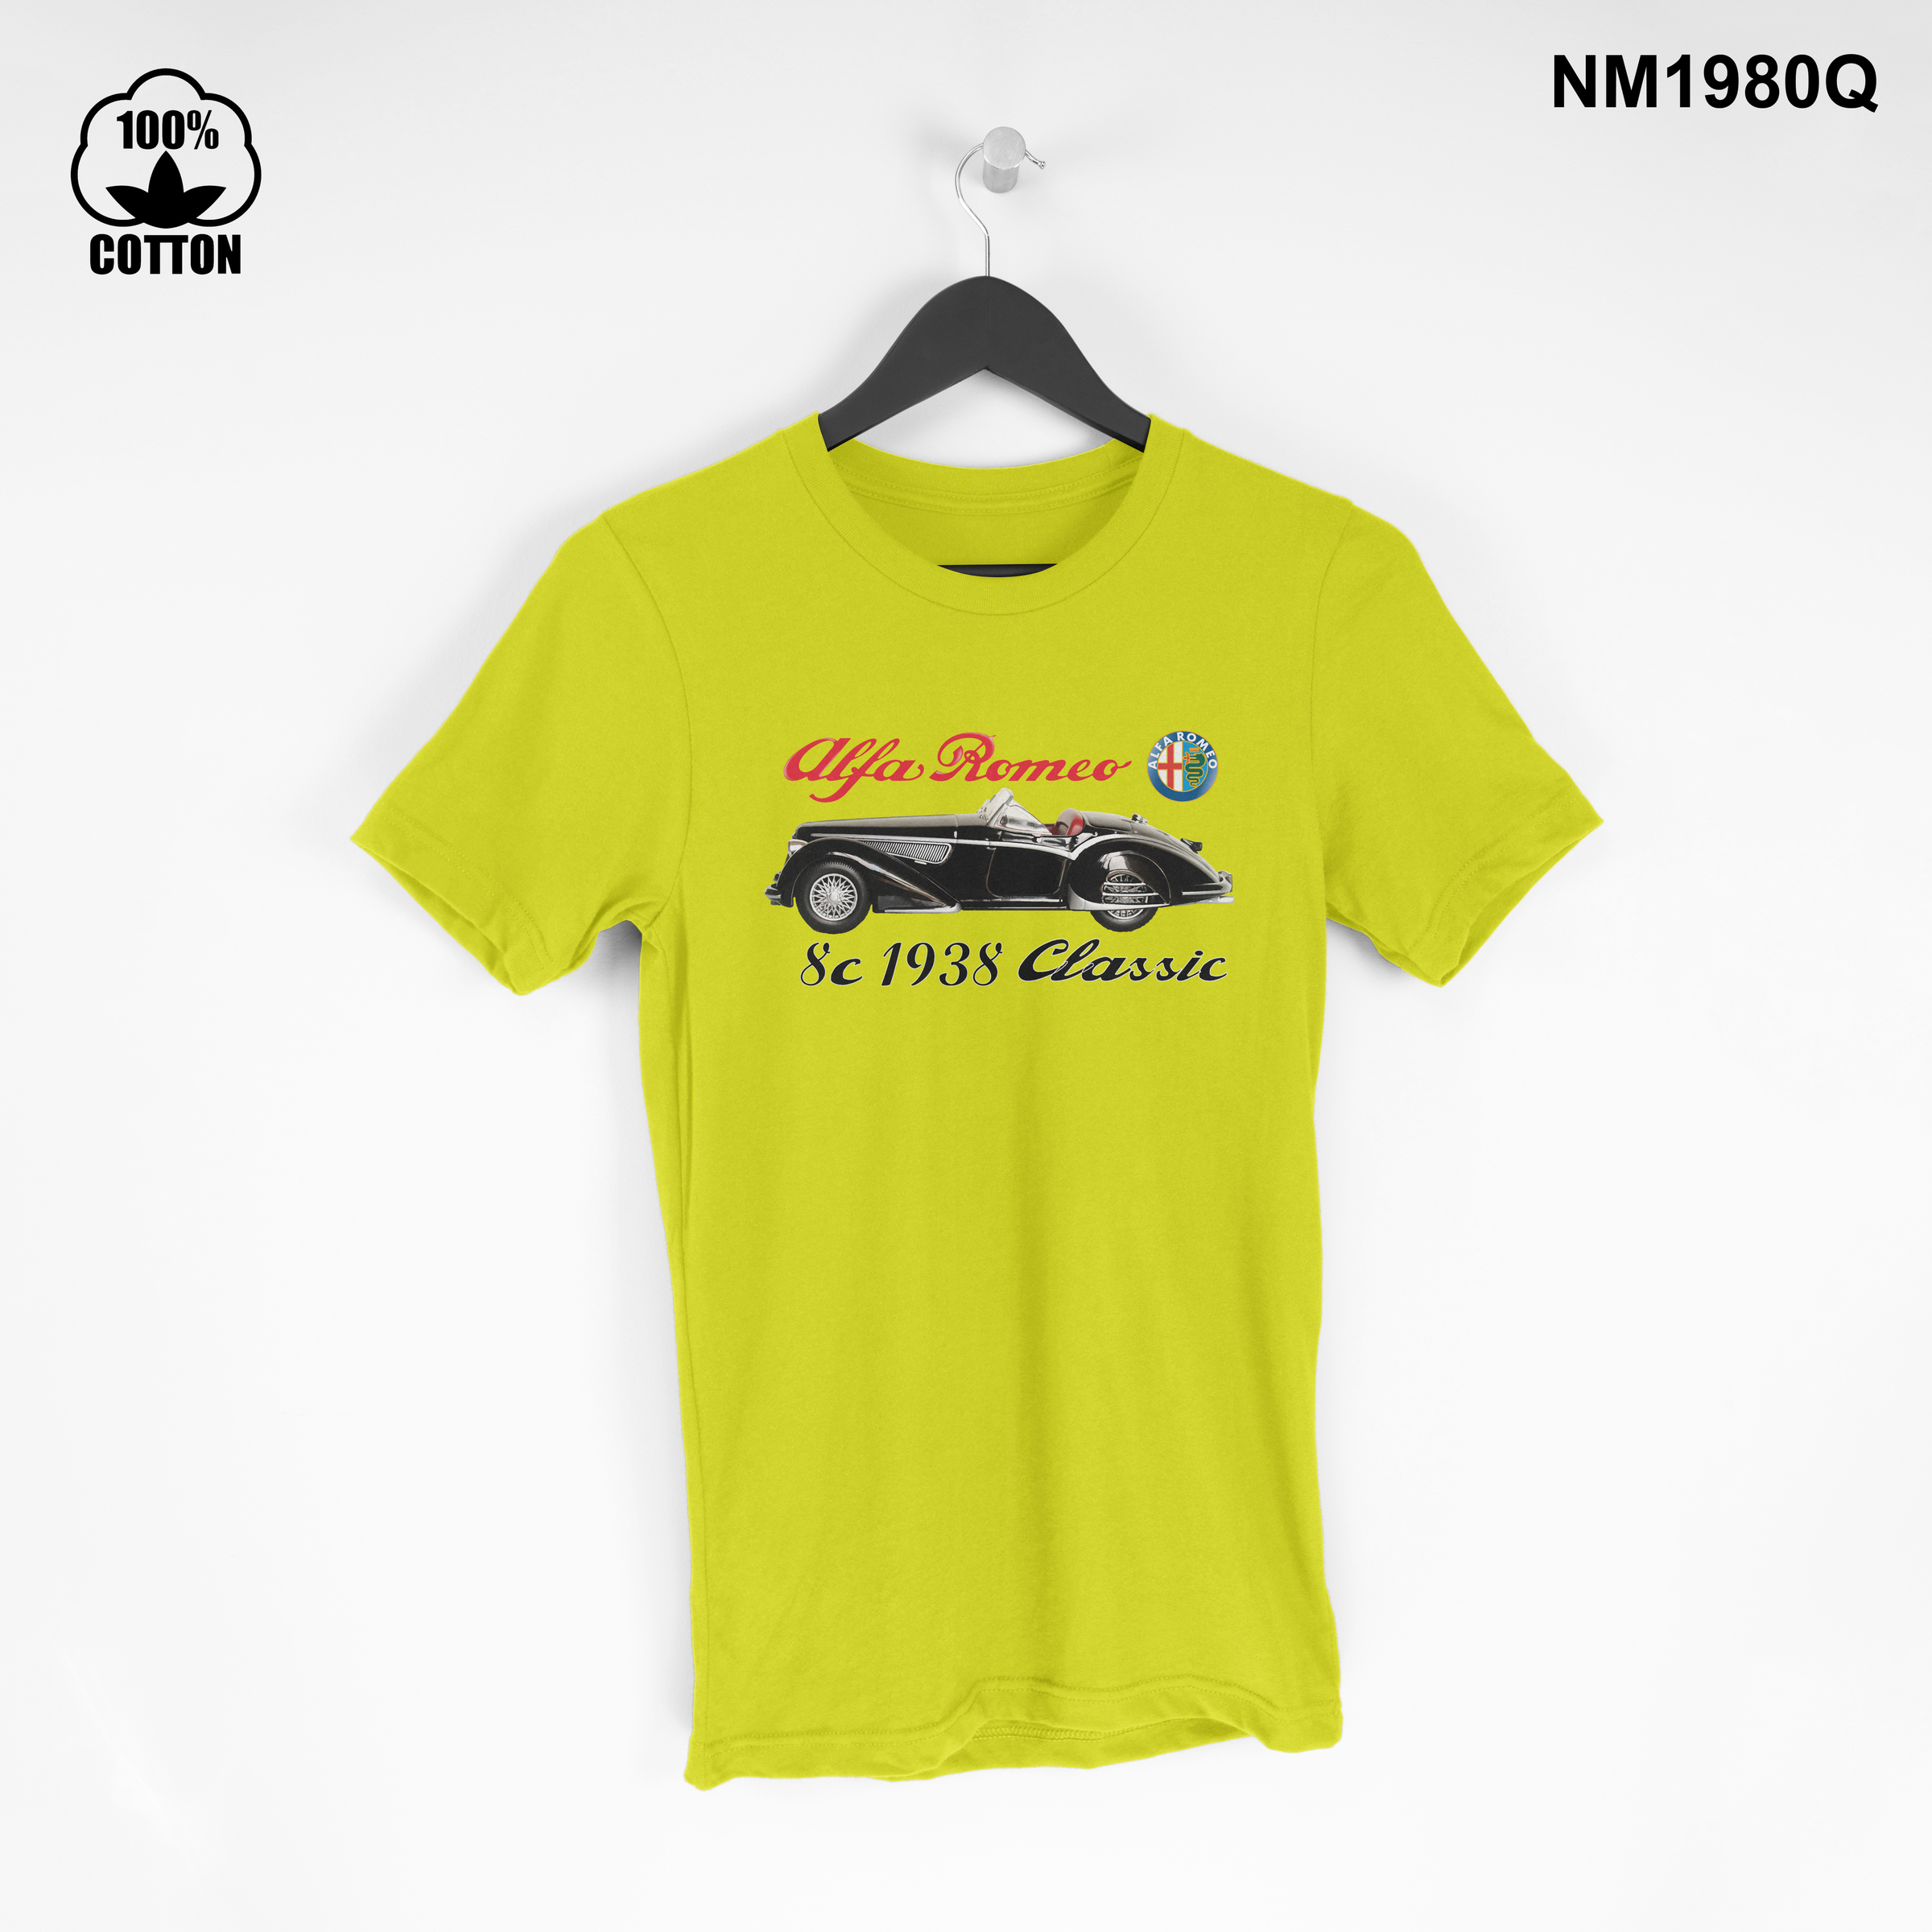 1.10 New Design Collectible car ,Alfa Romeo 8c 1938 Vintage, T Shirt Tee Unisex yellow.jpg